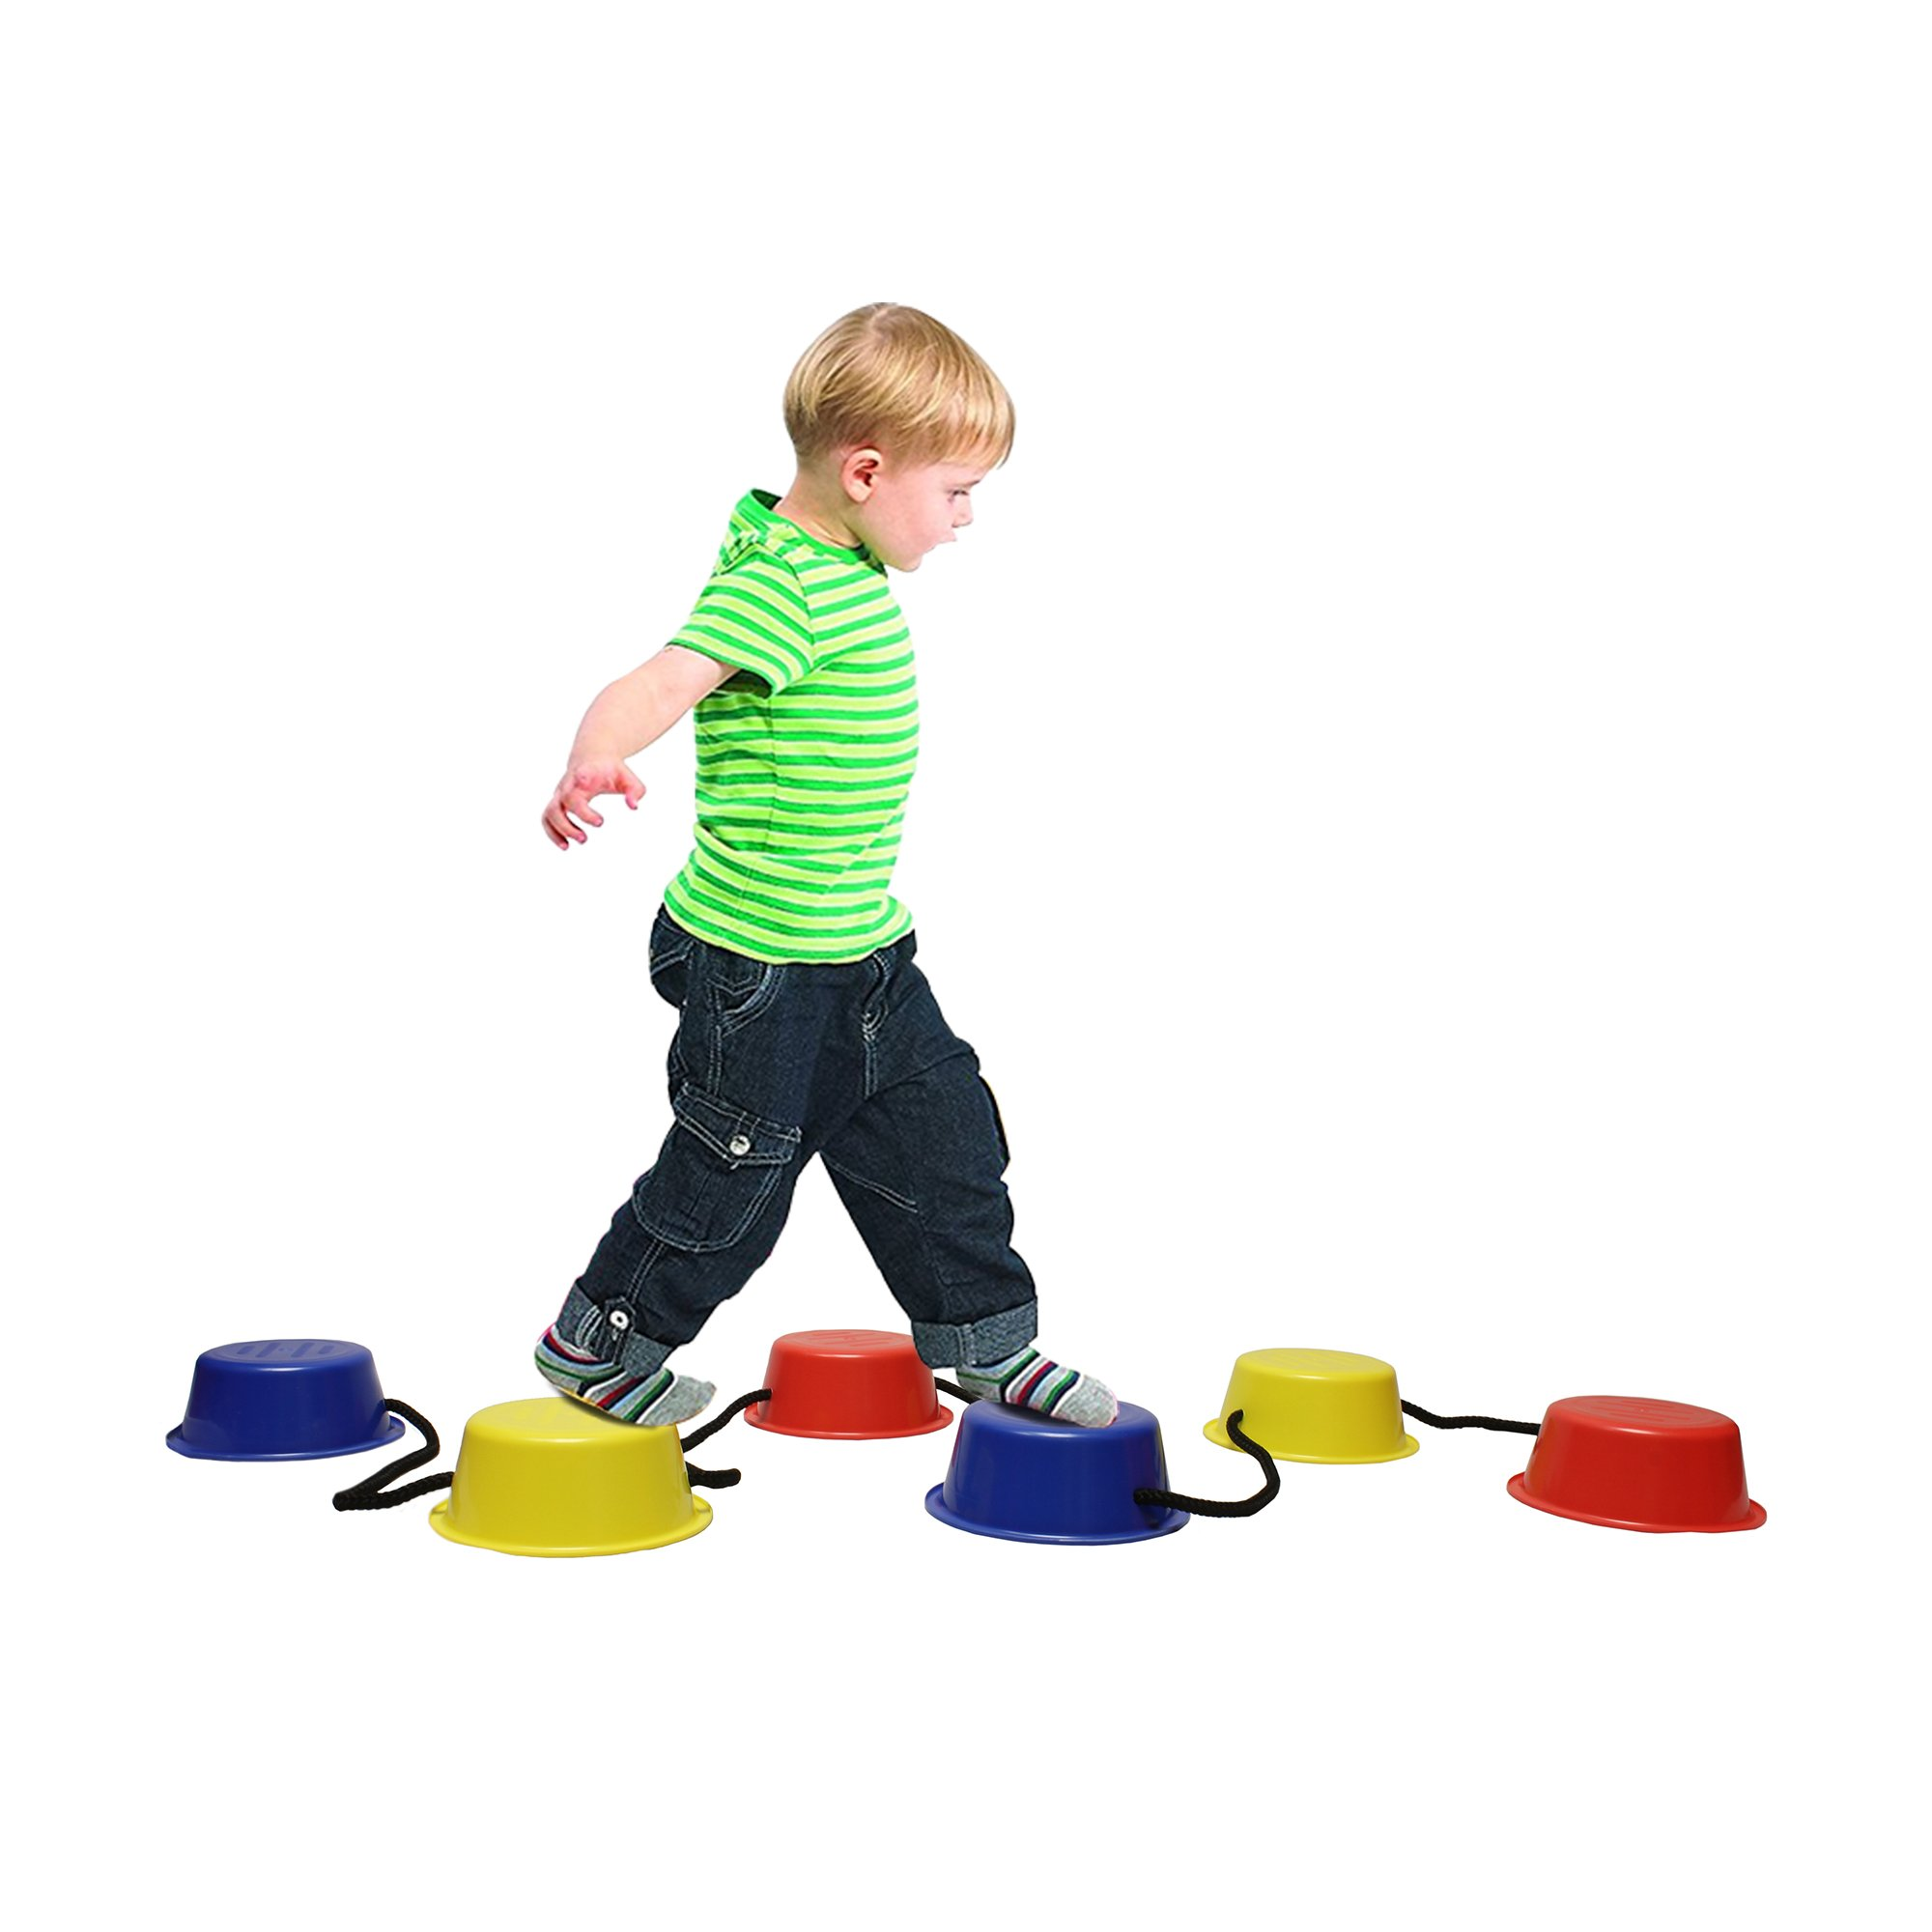 Get Out! Kids Stepping Buckets 6-Pack – Balance and Eye Coordination Toy Training Tool for Children & Physical Therapy